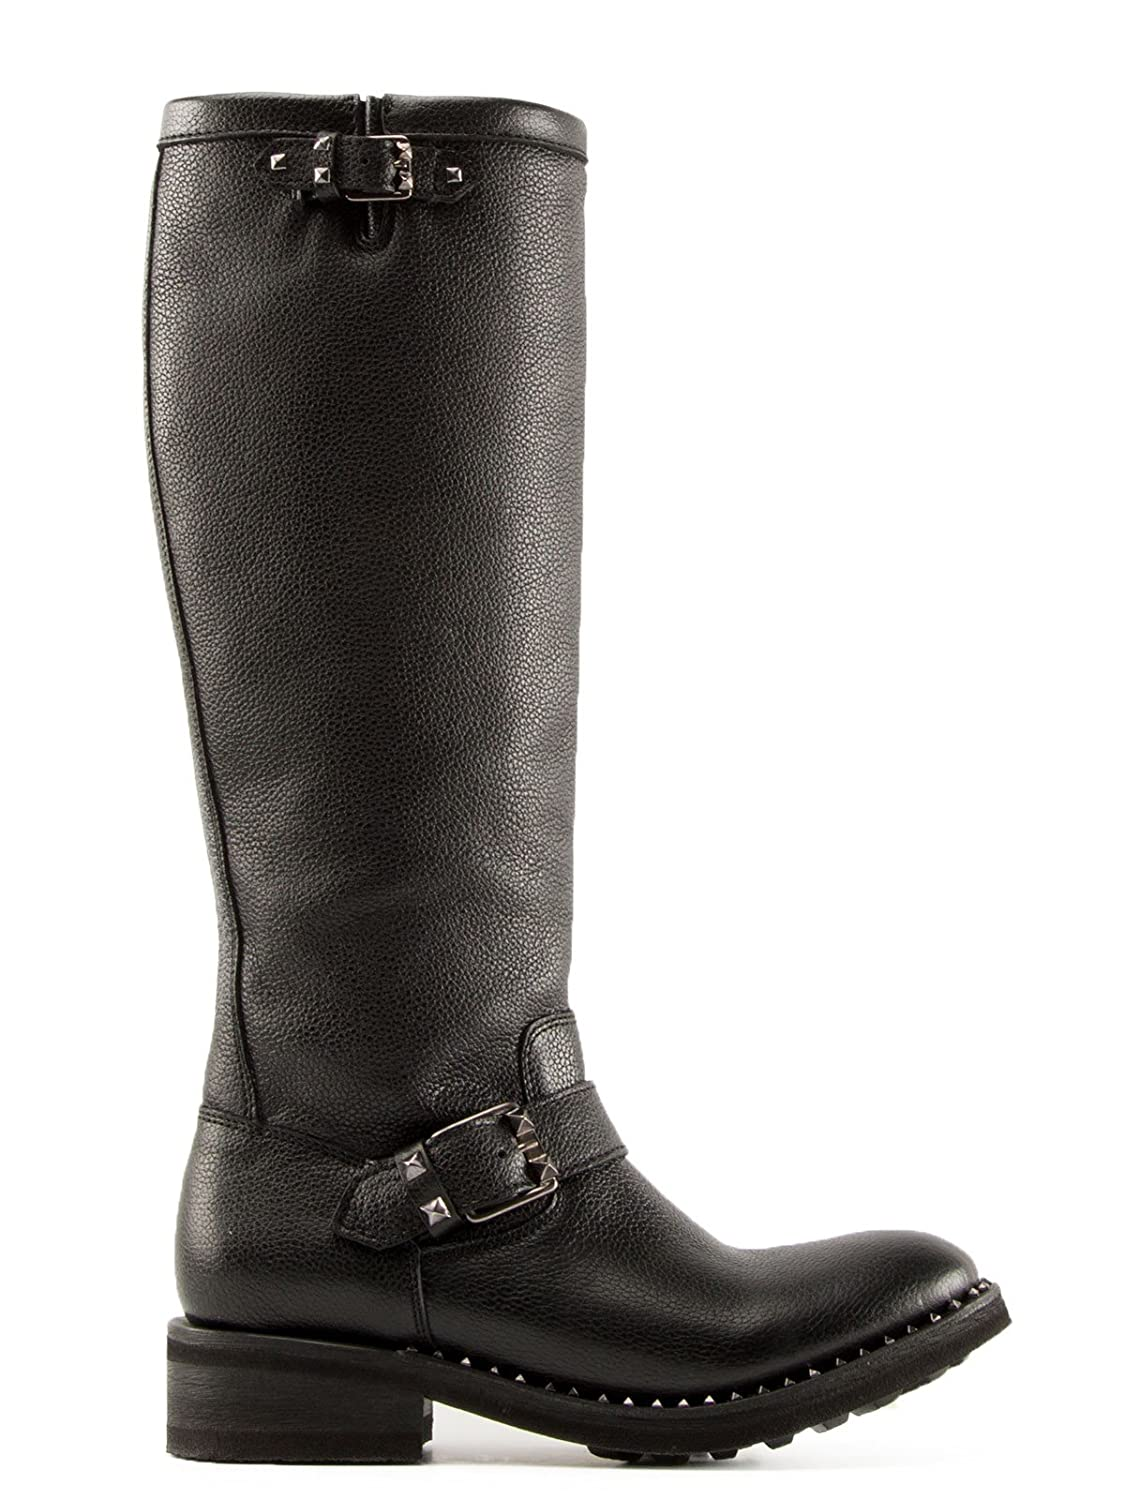 ASH WOMEN'S SUGAR004 BLACK LEATHER BOOTS